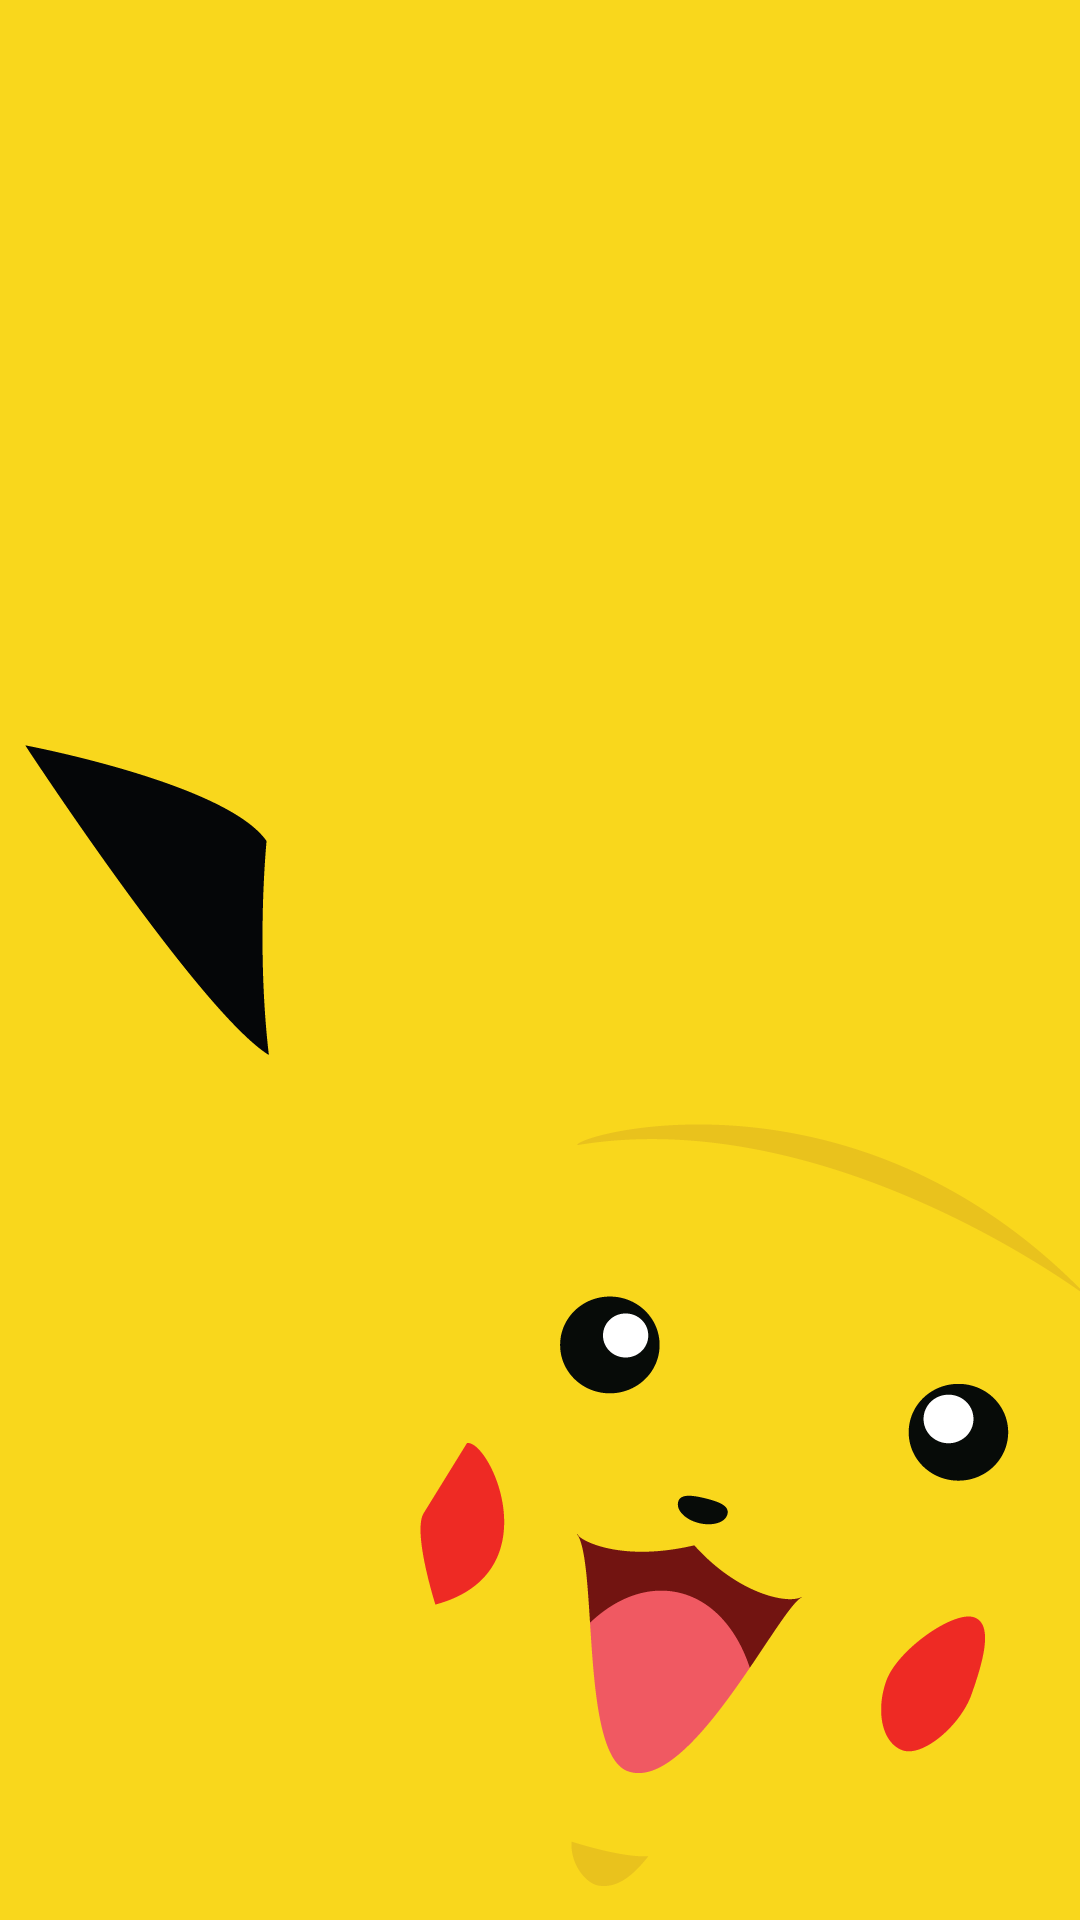 Pikachu Hd Wallpapers For Iphone 6s Plus Page 2 Wallpapers Pictures